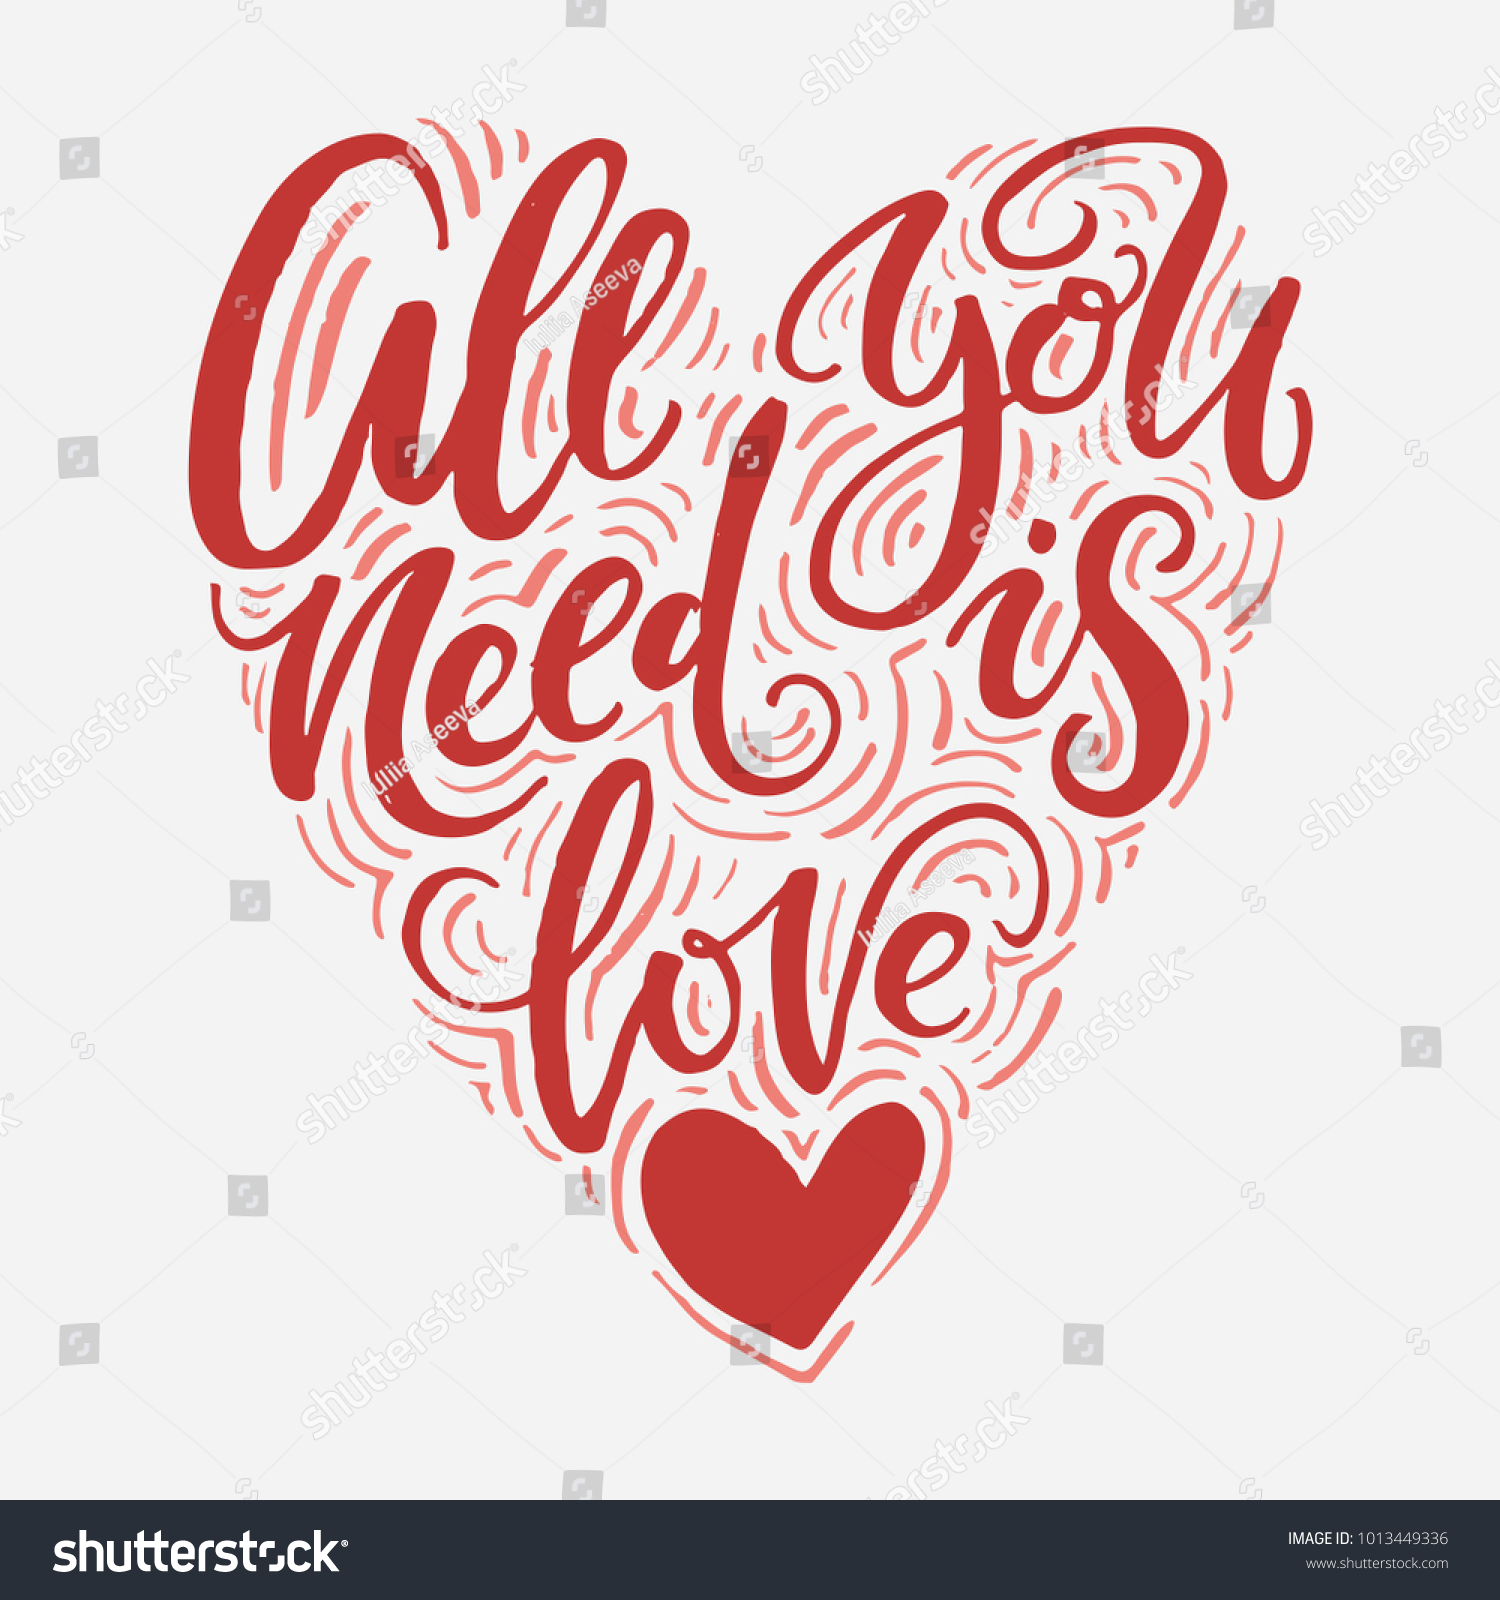 All you need is love. Hand drawn romantic lettering in a heart shape ...